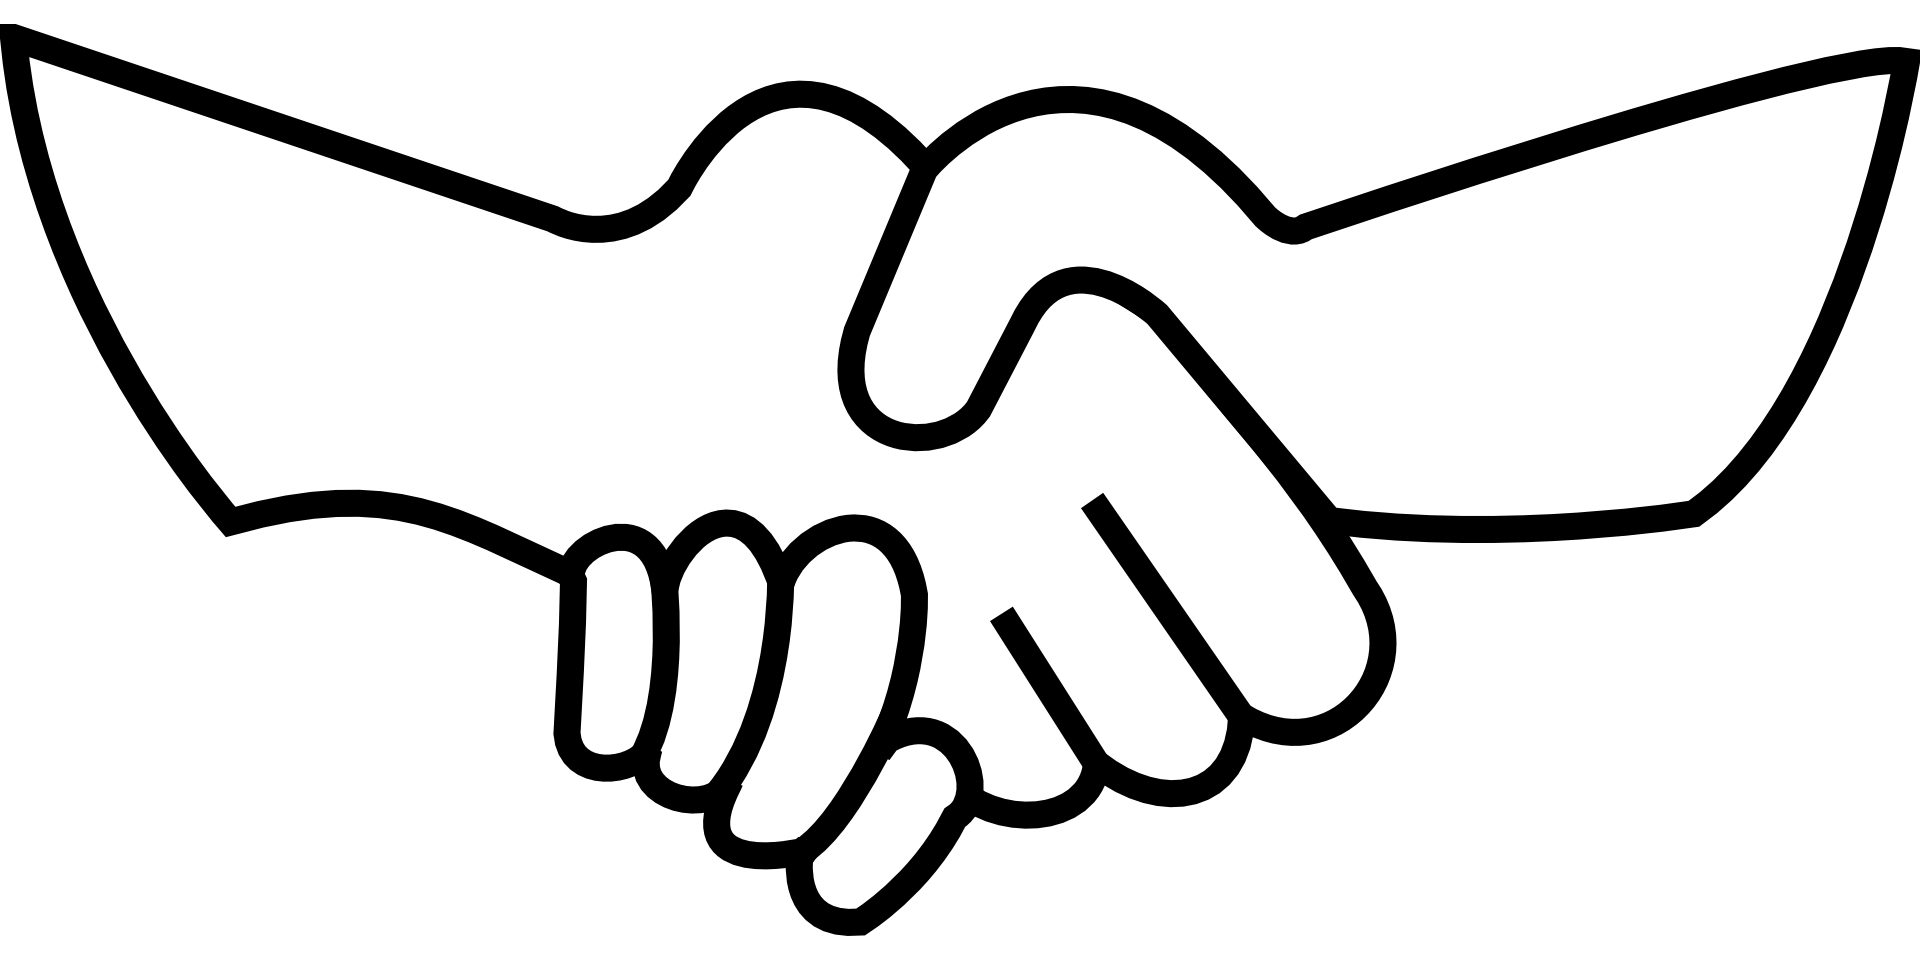 Handshake clipart png. Holding hands praying clip